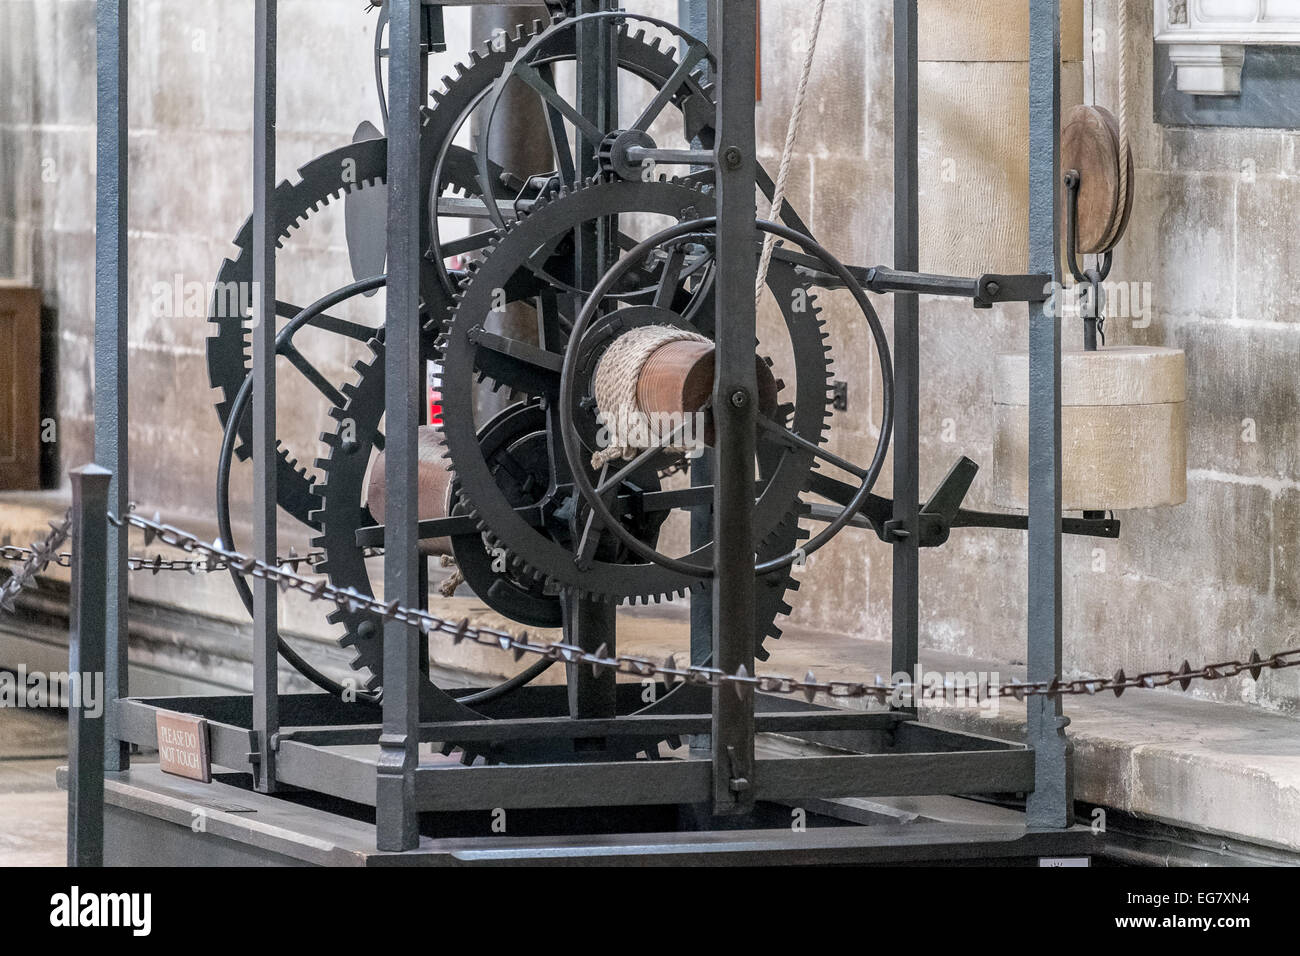 the-oldest-working-medieval-clock-in-the-world-in-salisbury-cathedral-EG7XN4.jpg